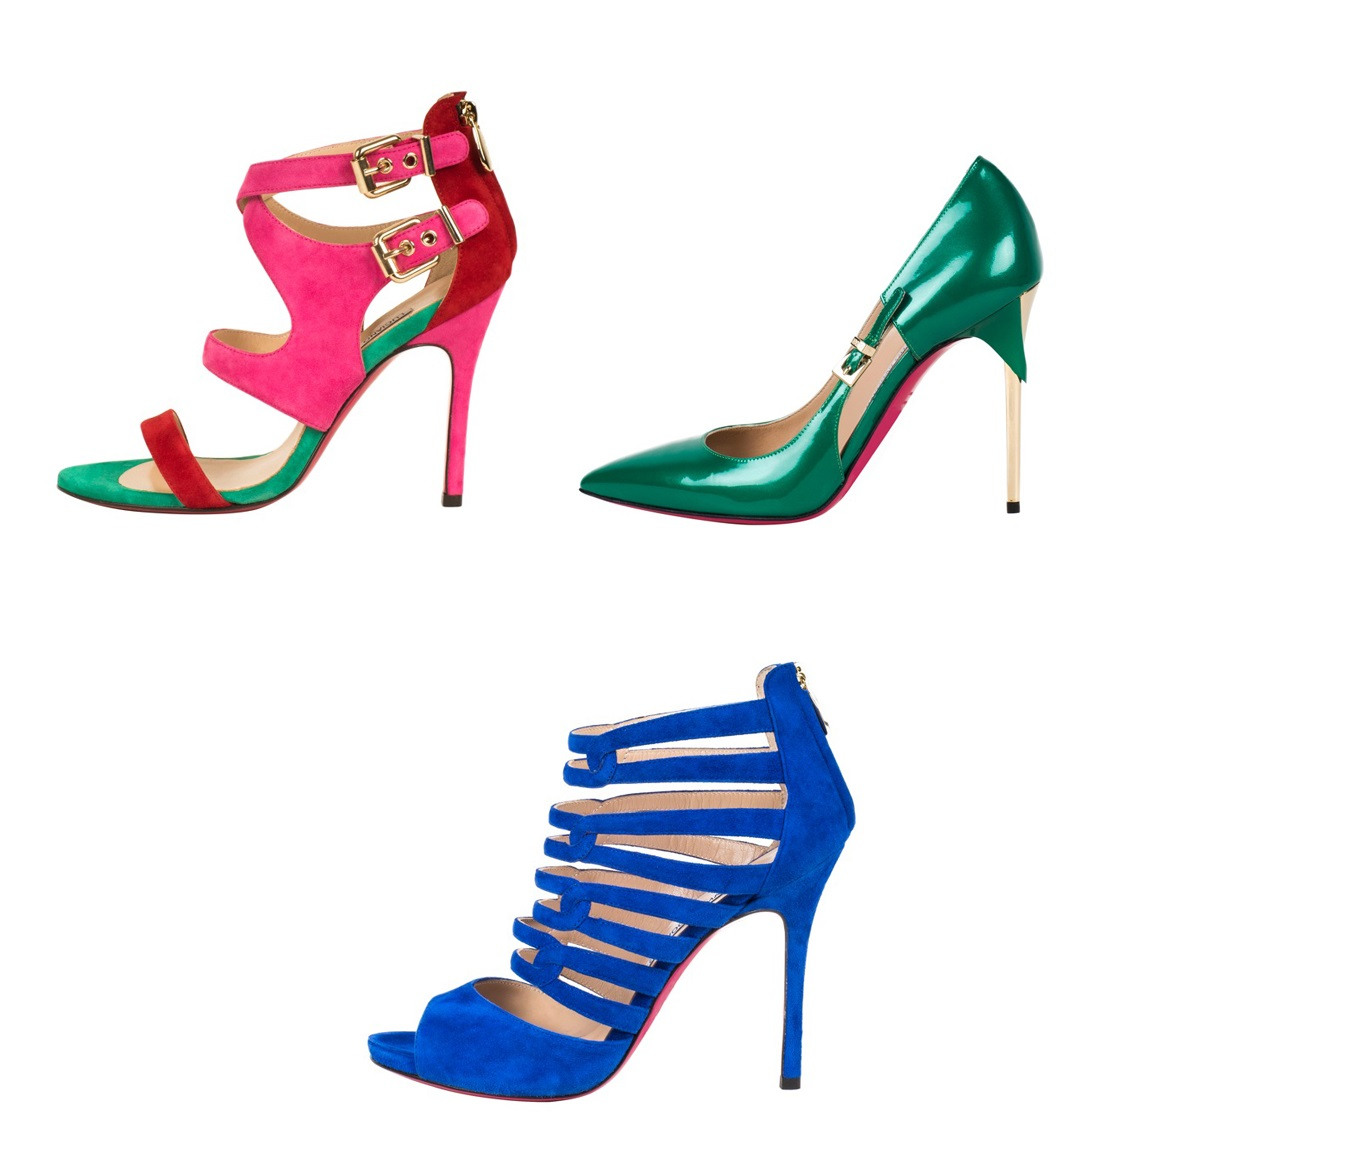 Expo2015, shoes, heels personal shopper, personal stylist, image consultant, Silk Gift Milan, shopping, shopping in milan, milan